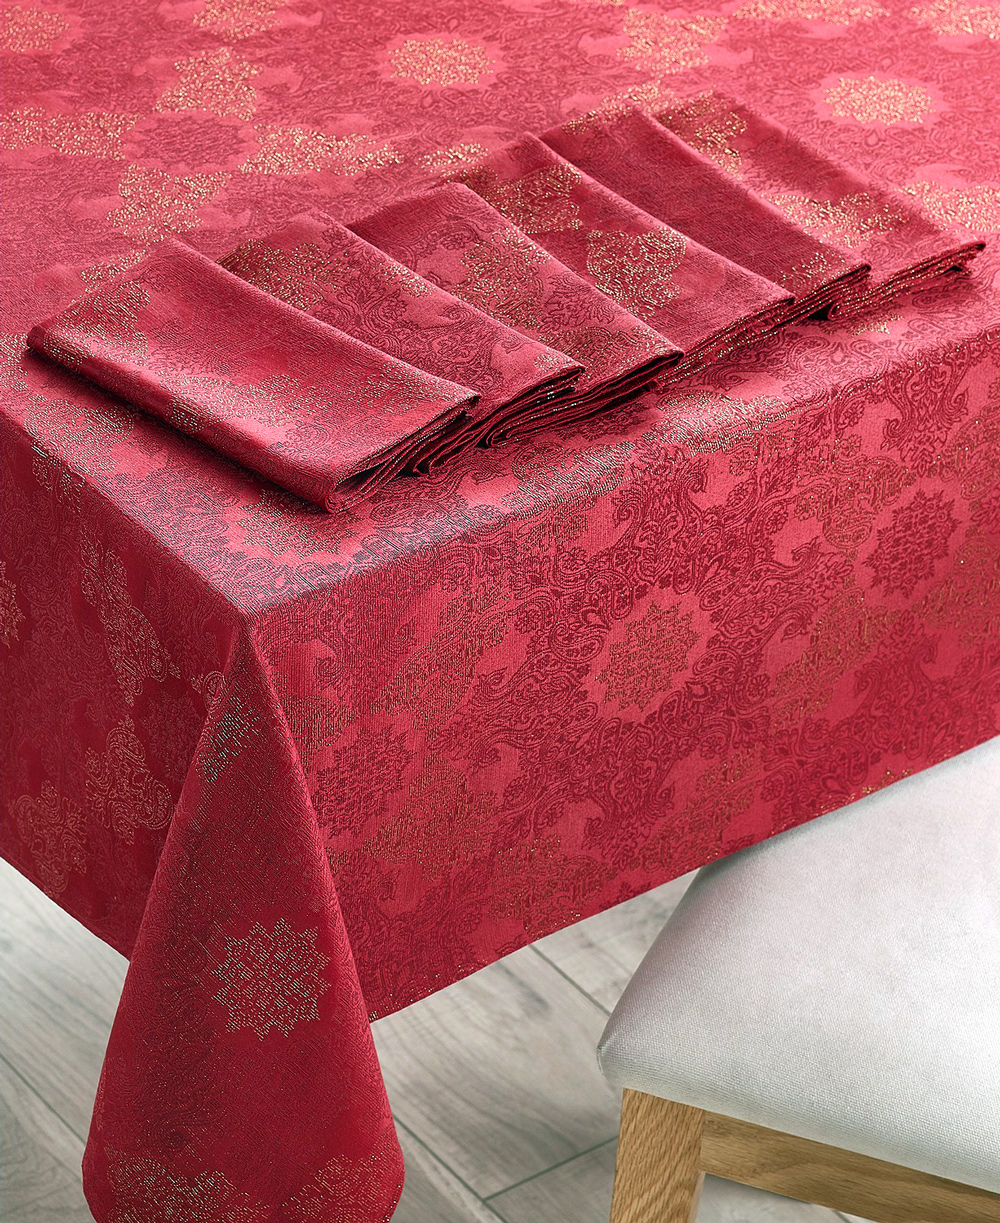 martha stewart collection holiday dining set with tablecloth and napkins